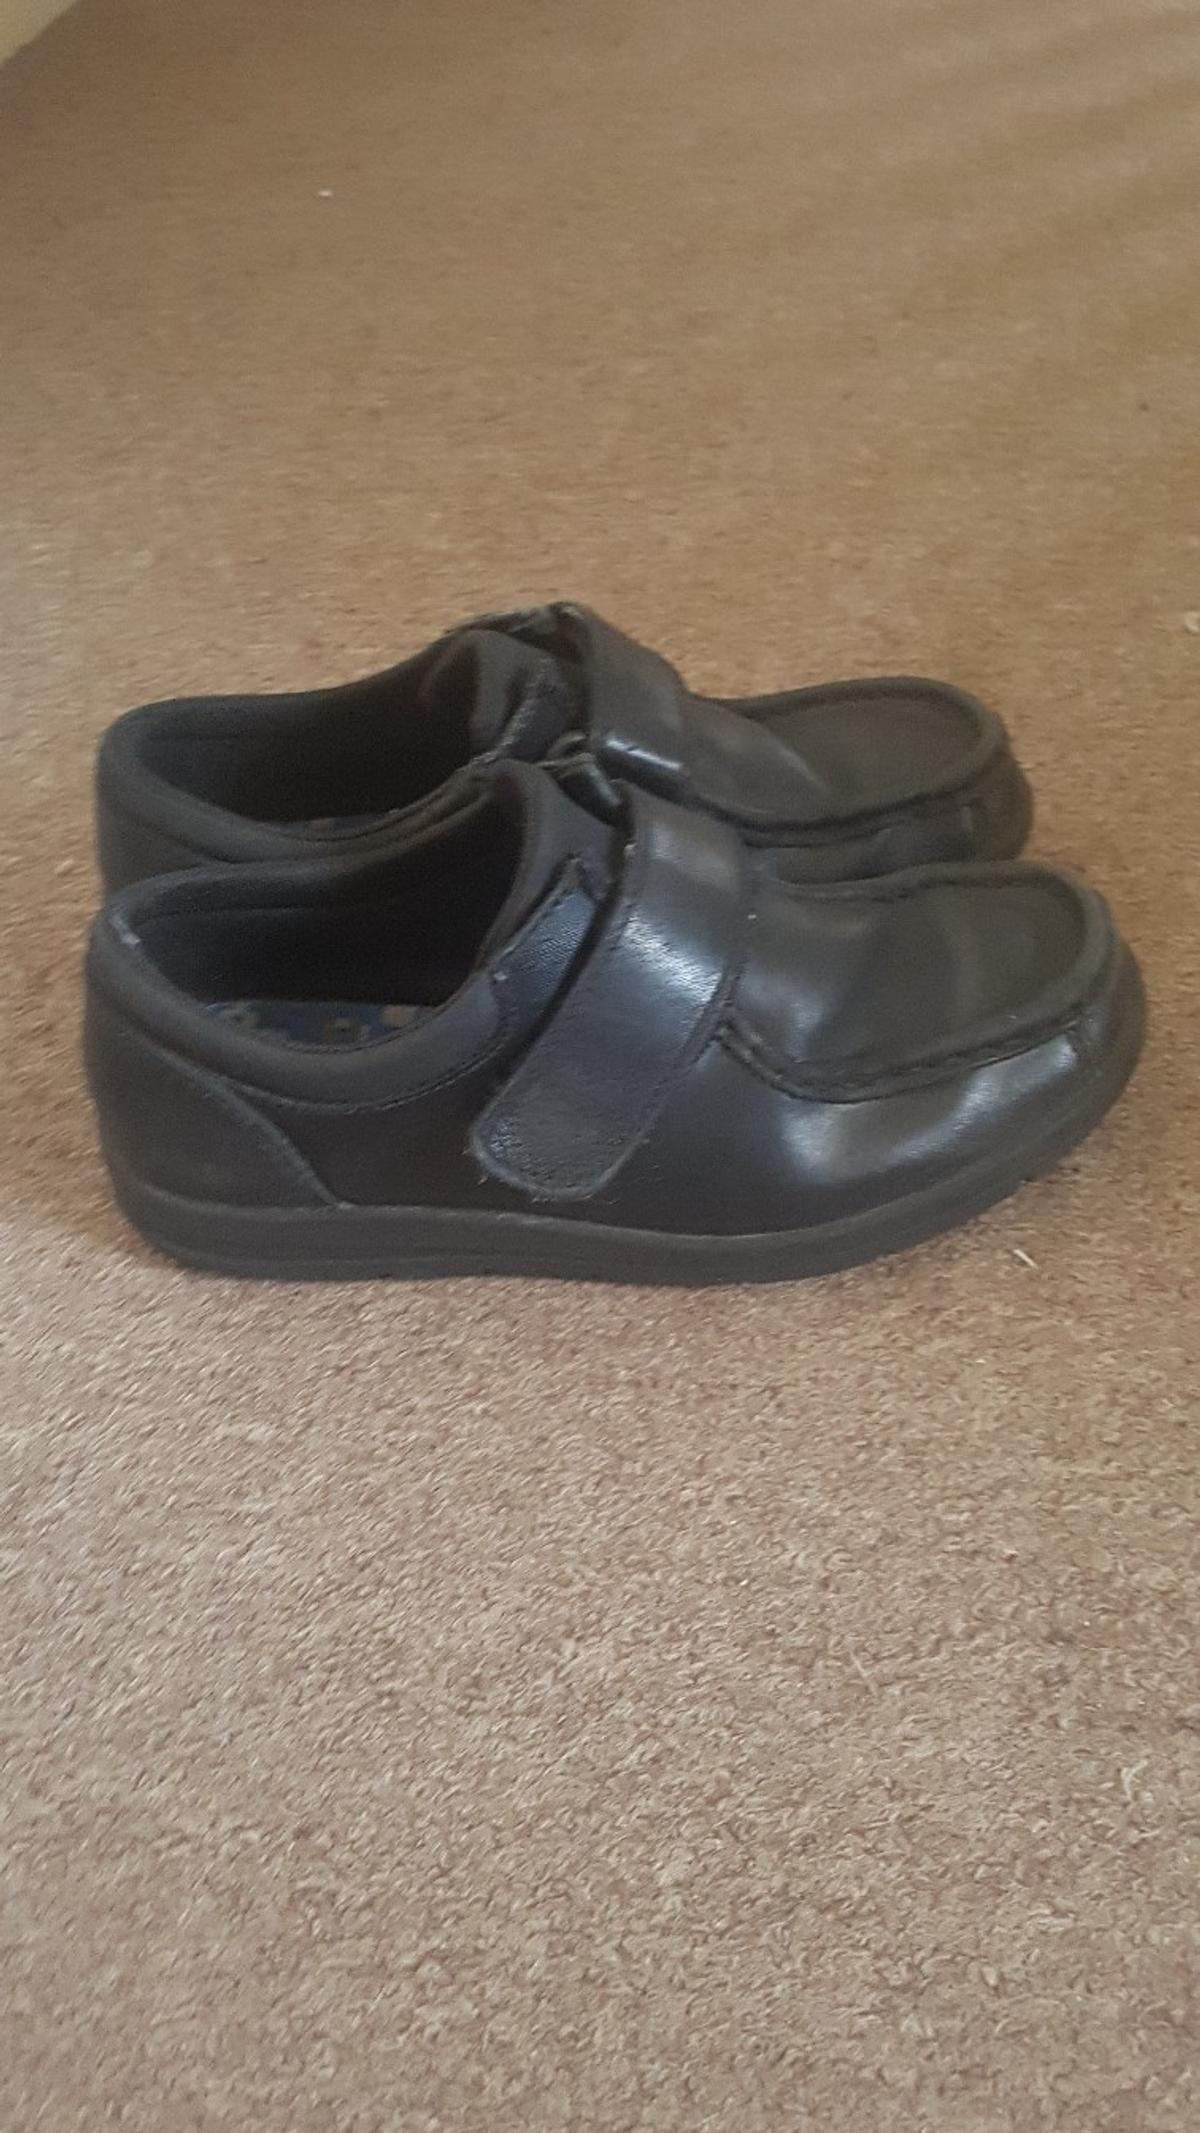 040b37ae618 Clarks boys bootleg shoes size 3 in TN23 Ashford for £10.00 for sale ...